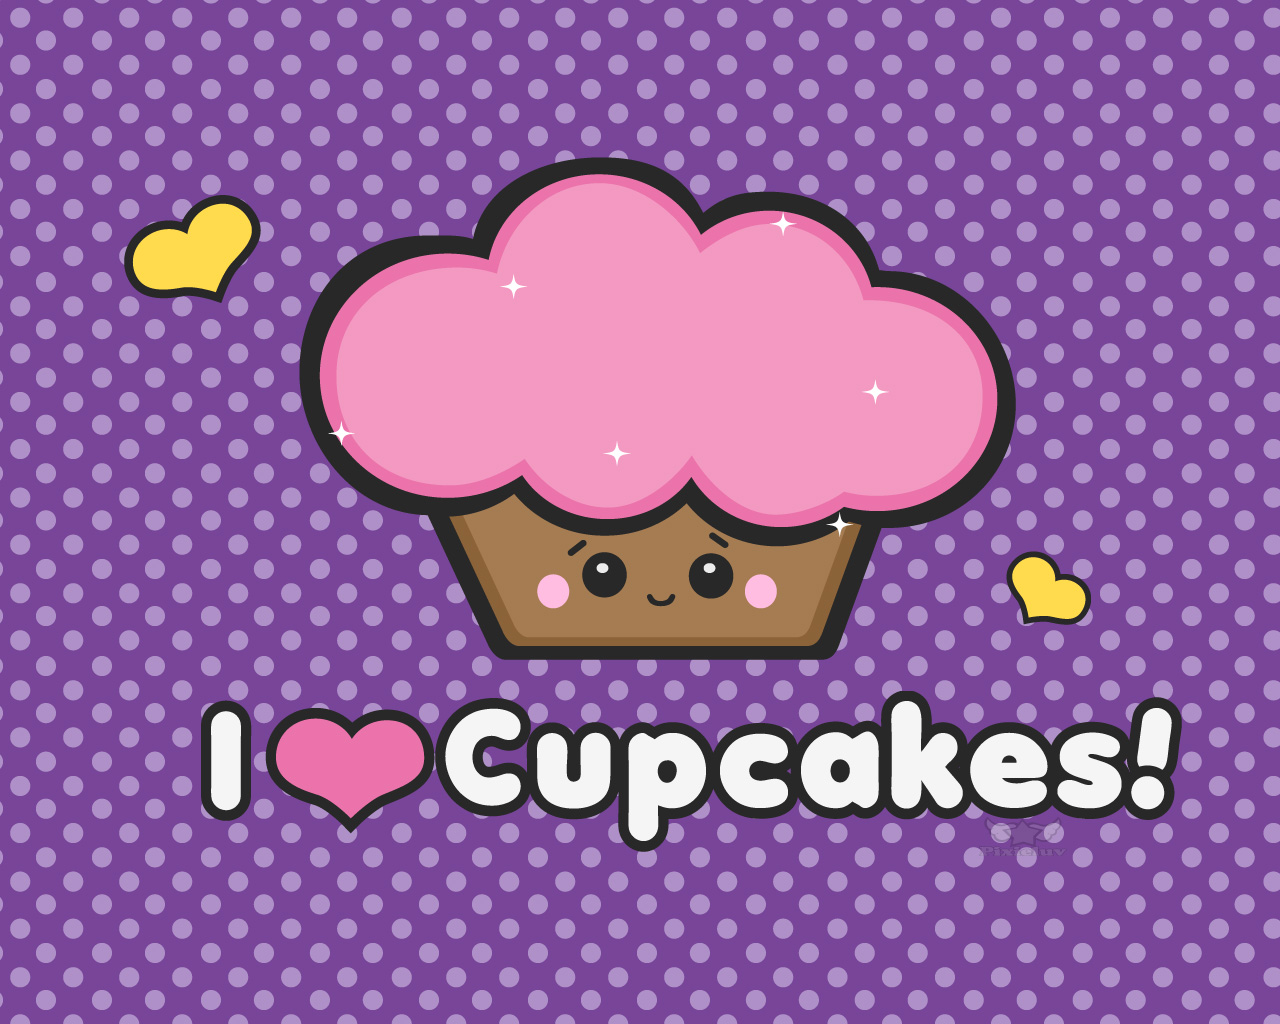 Cute Cupcake Images : Cute Cupcake Backgrounds